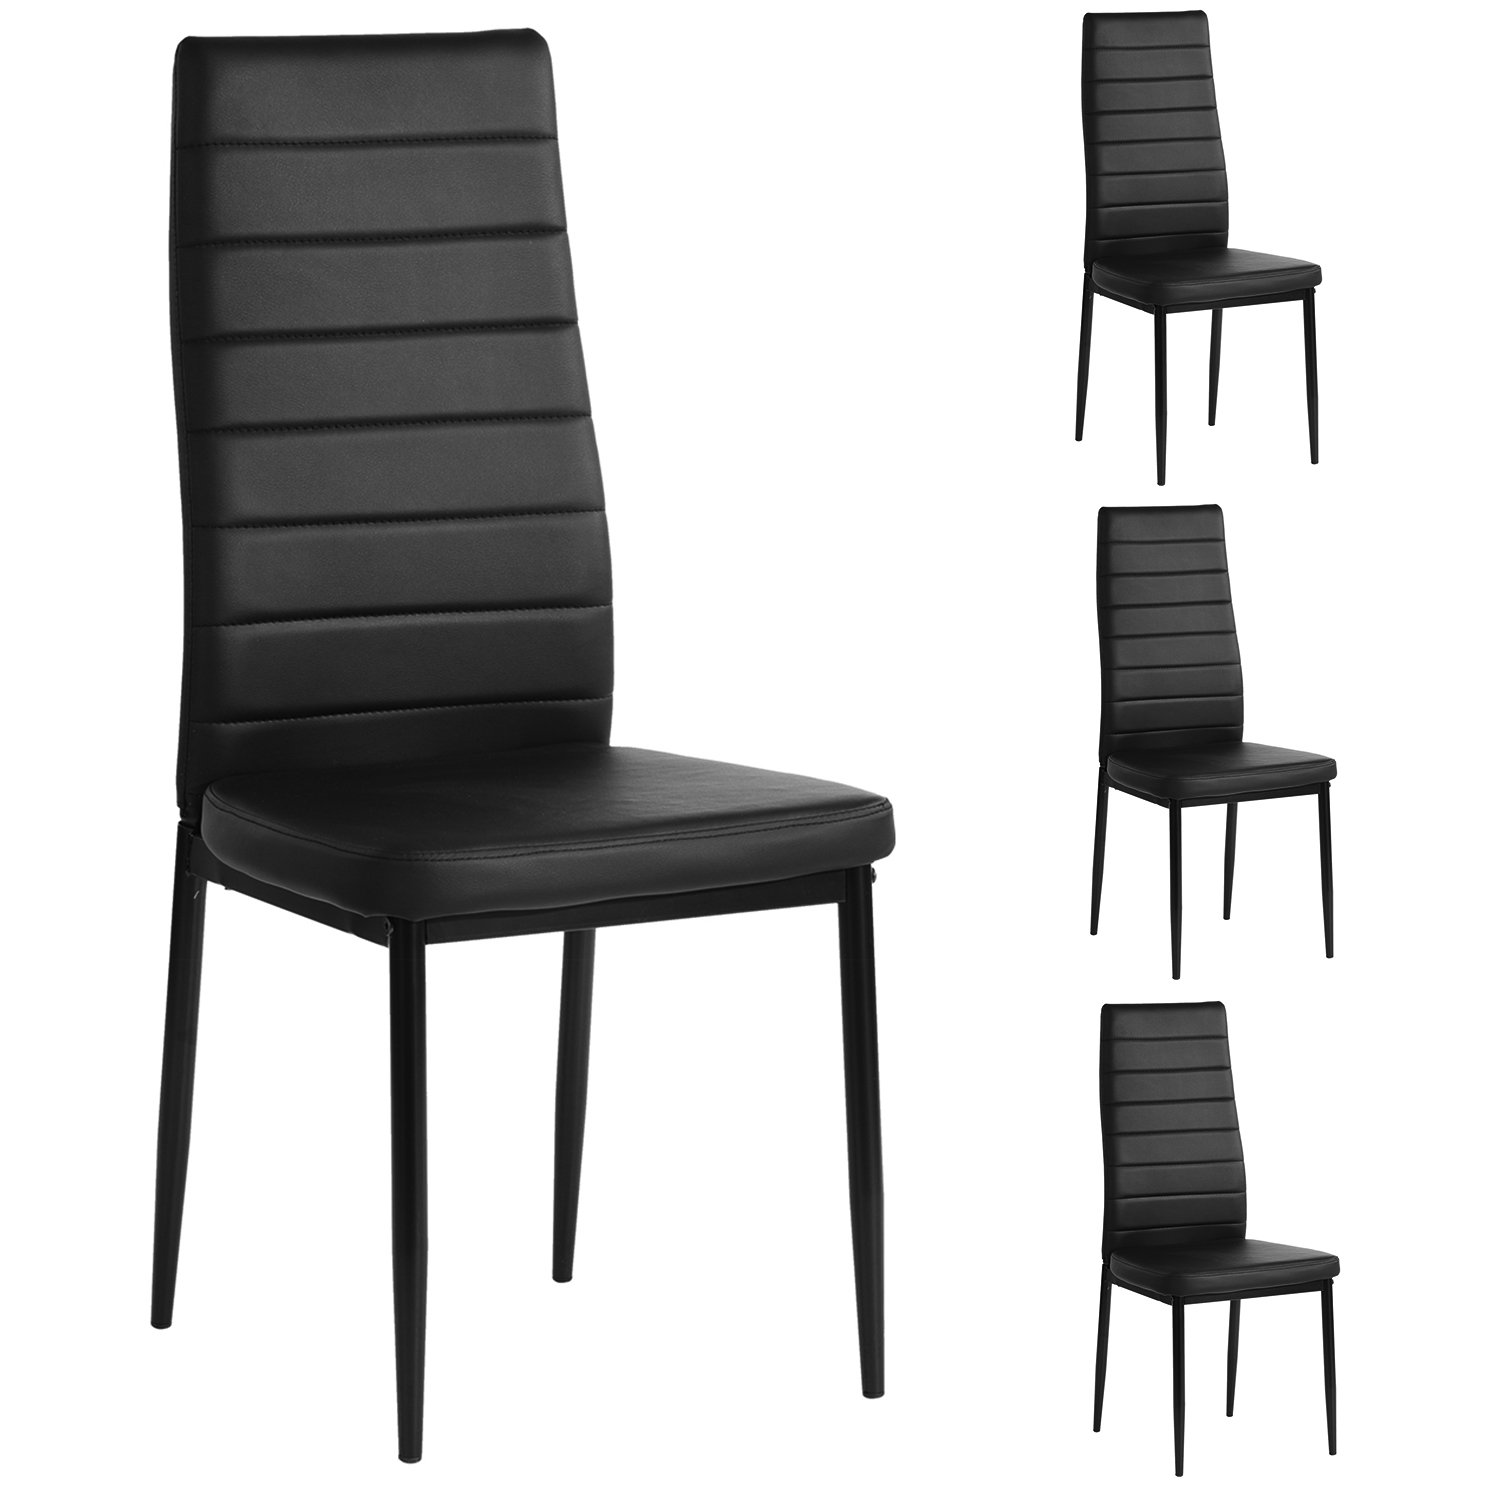 Aingoo Kitchen Chairs Set of 4 Dining Chair Black with Steel Frame High Back PU Leather by Aingoo